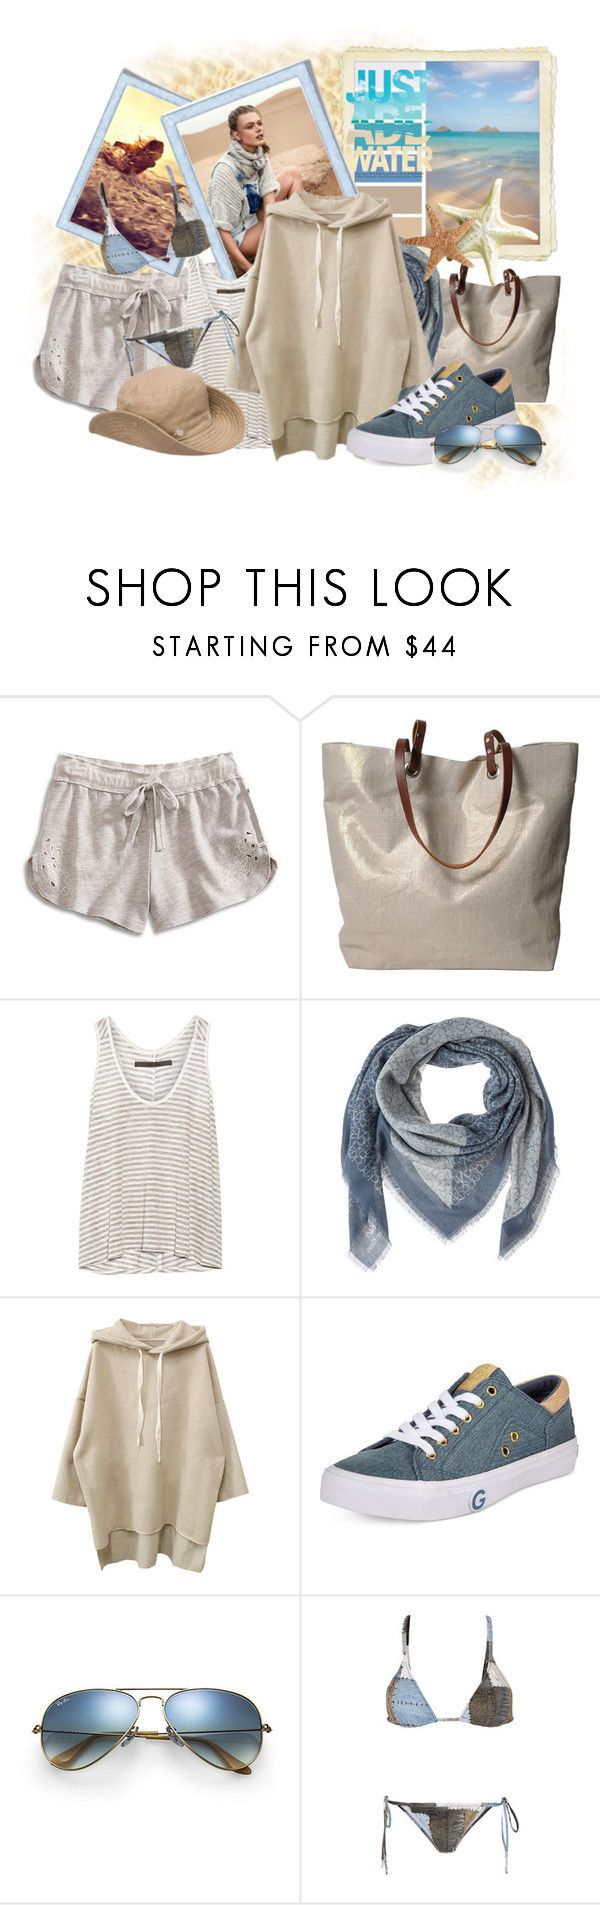 """To live and feel !"" by tasha1973 ❤ liked on Polyvore featuring Lucky Brand, Seed Design, Independent Reign, Enza Costa, Calvin Klein, G by Guess, Ray-Ban and Norma Kamali"